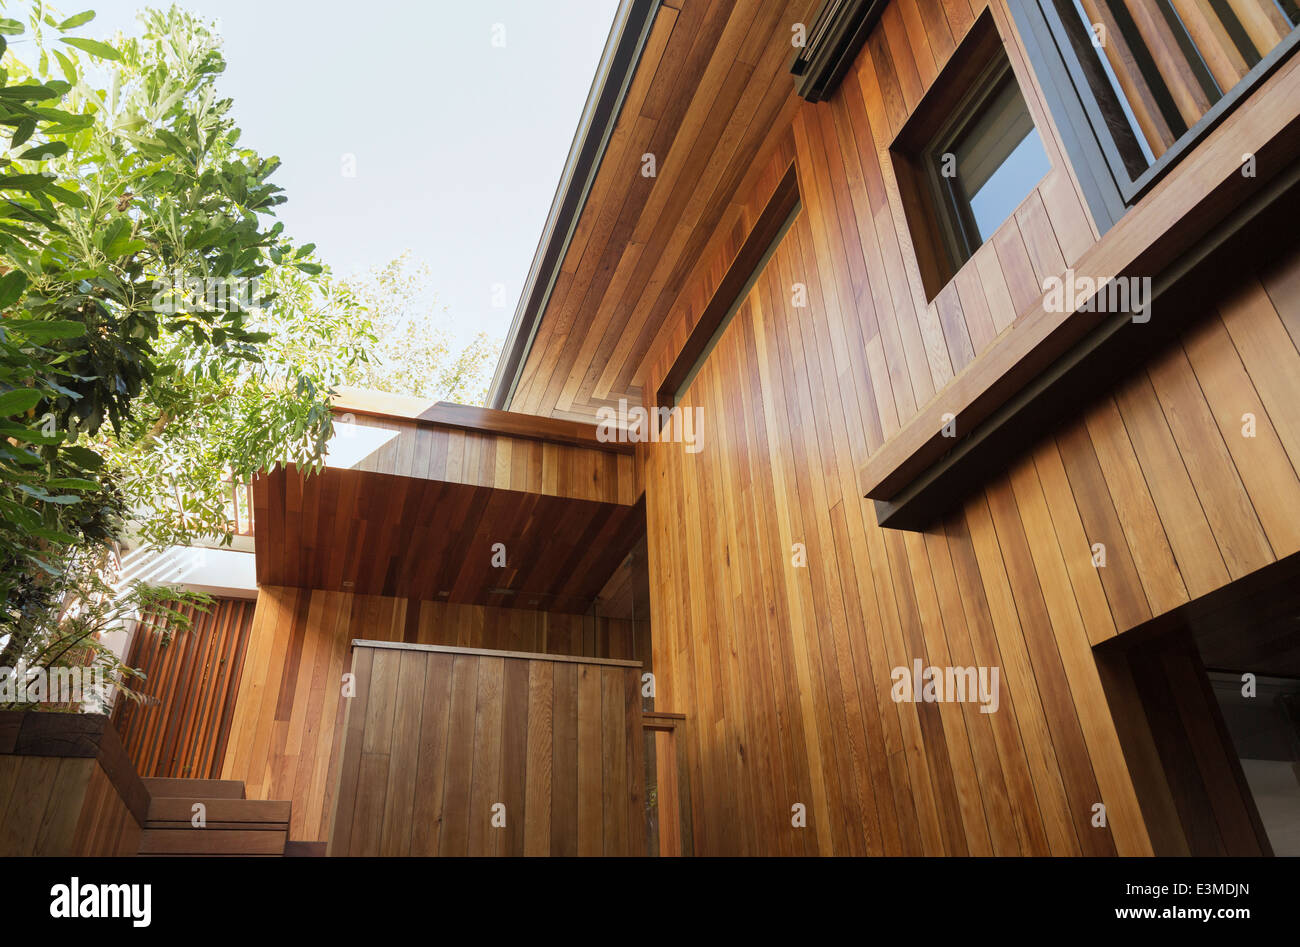 Detail of wood siding on house - Stock Image